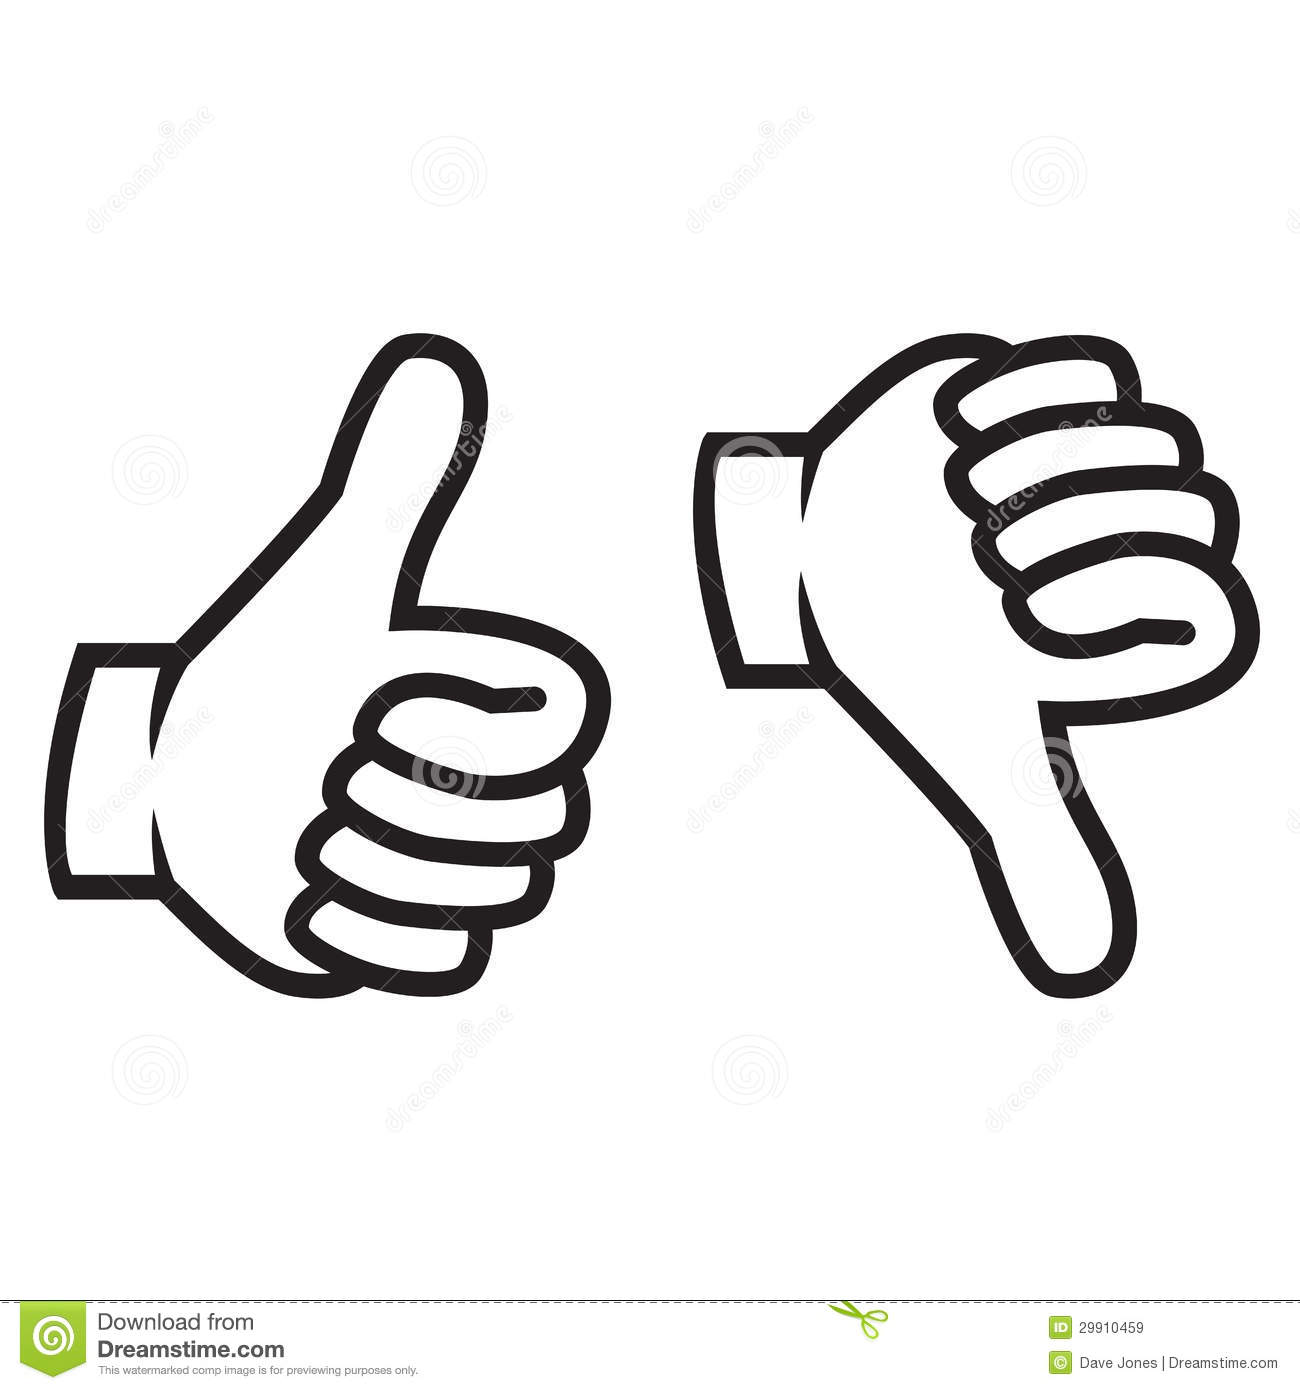 2 thumbs up clipart png royalty free download Two Thumbs Up Clipart - Clipart Kid png royalty free download